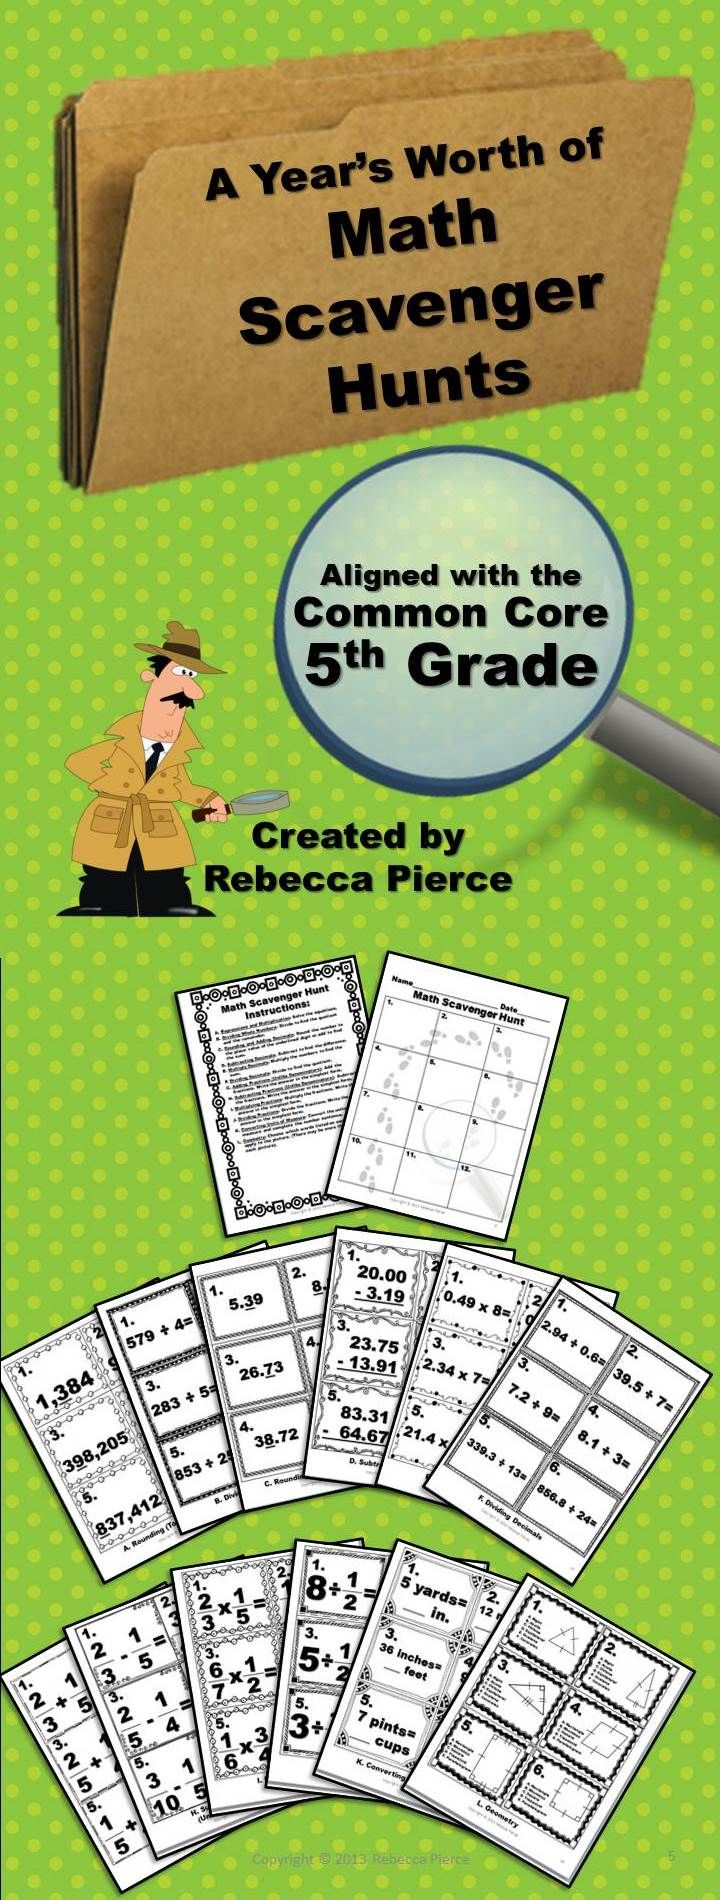 Workbooks scott foresman social studies workbook answers 5th grade : 96 best 5th grade images on Pinterest | School, Reading and 5th grades